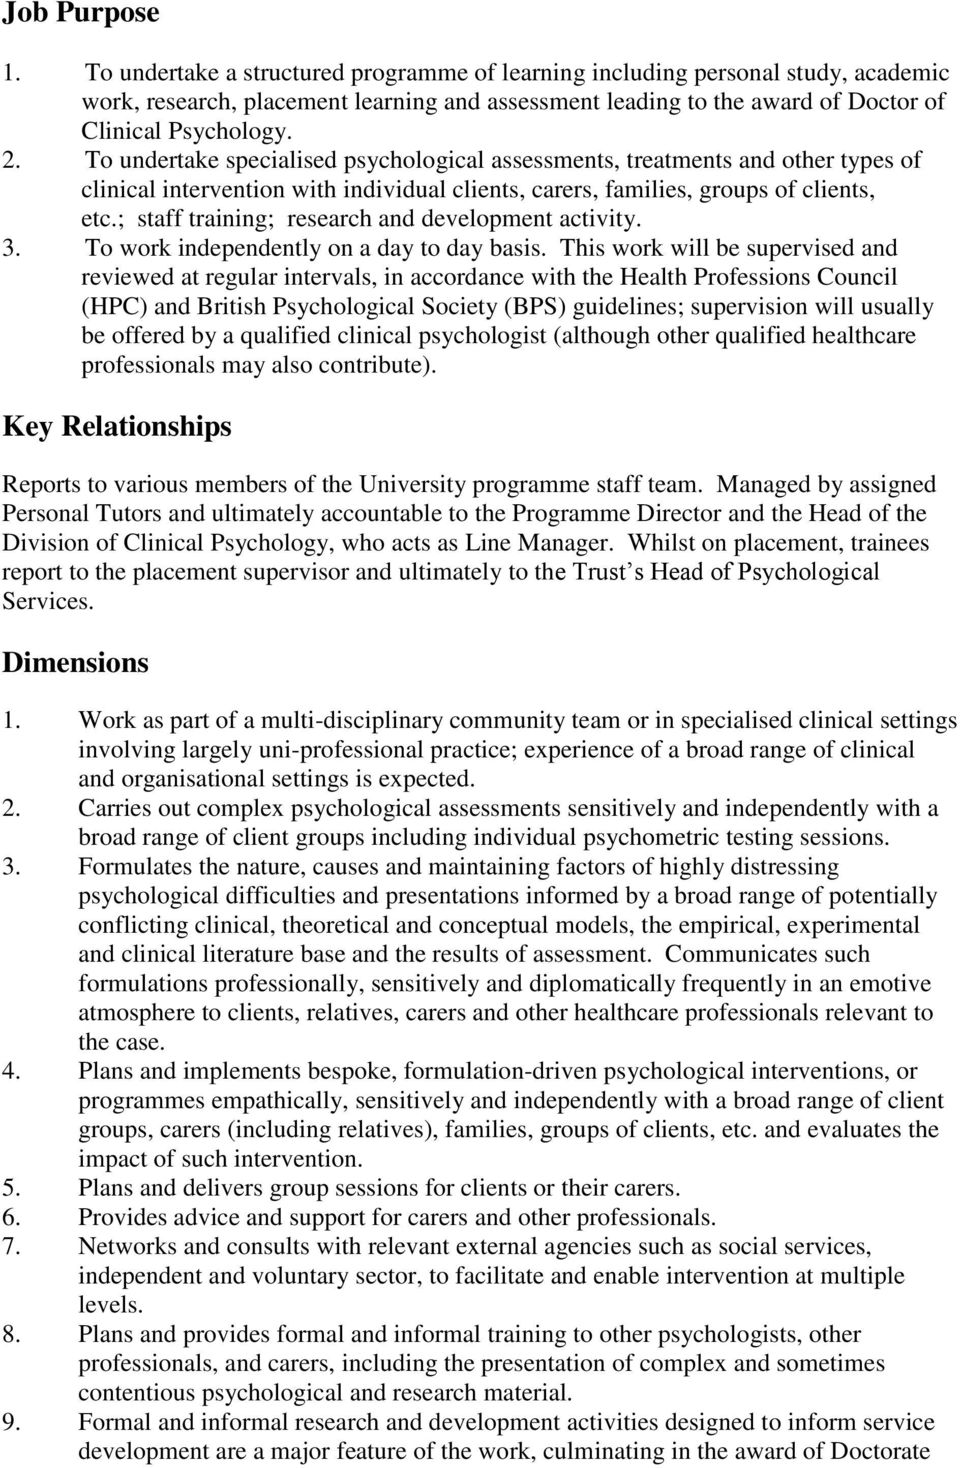 MANCHESTER MENTAL HEALTH AND SOCIAL CARE TRUST and DIVISION